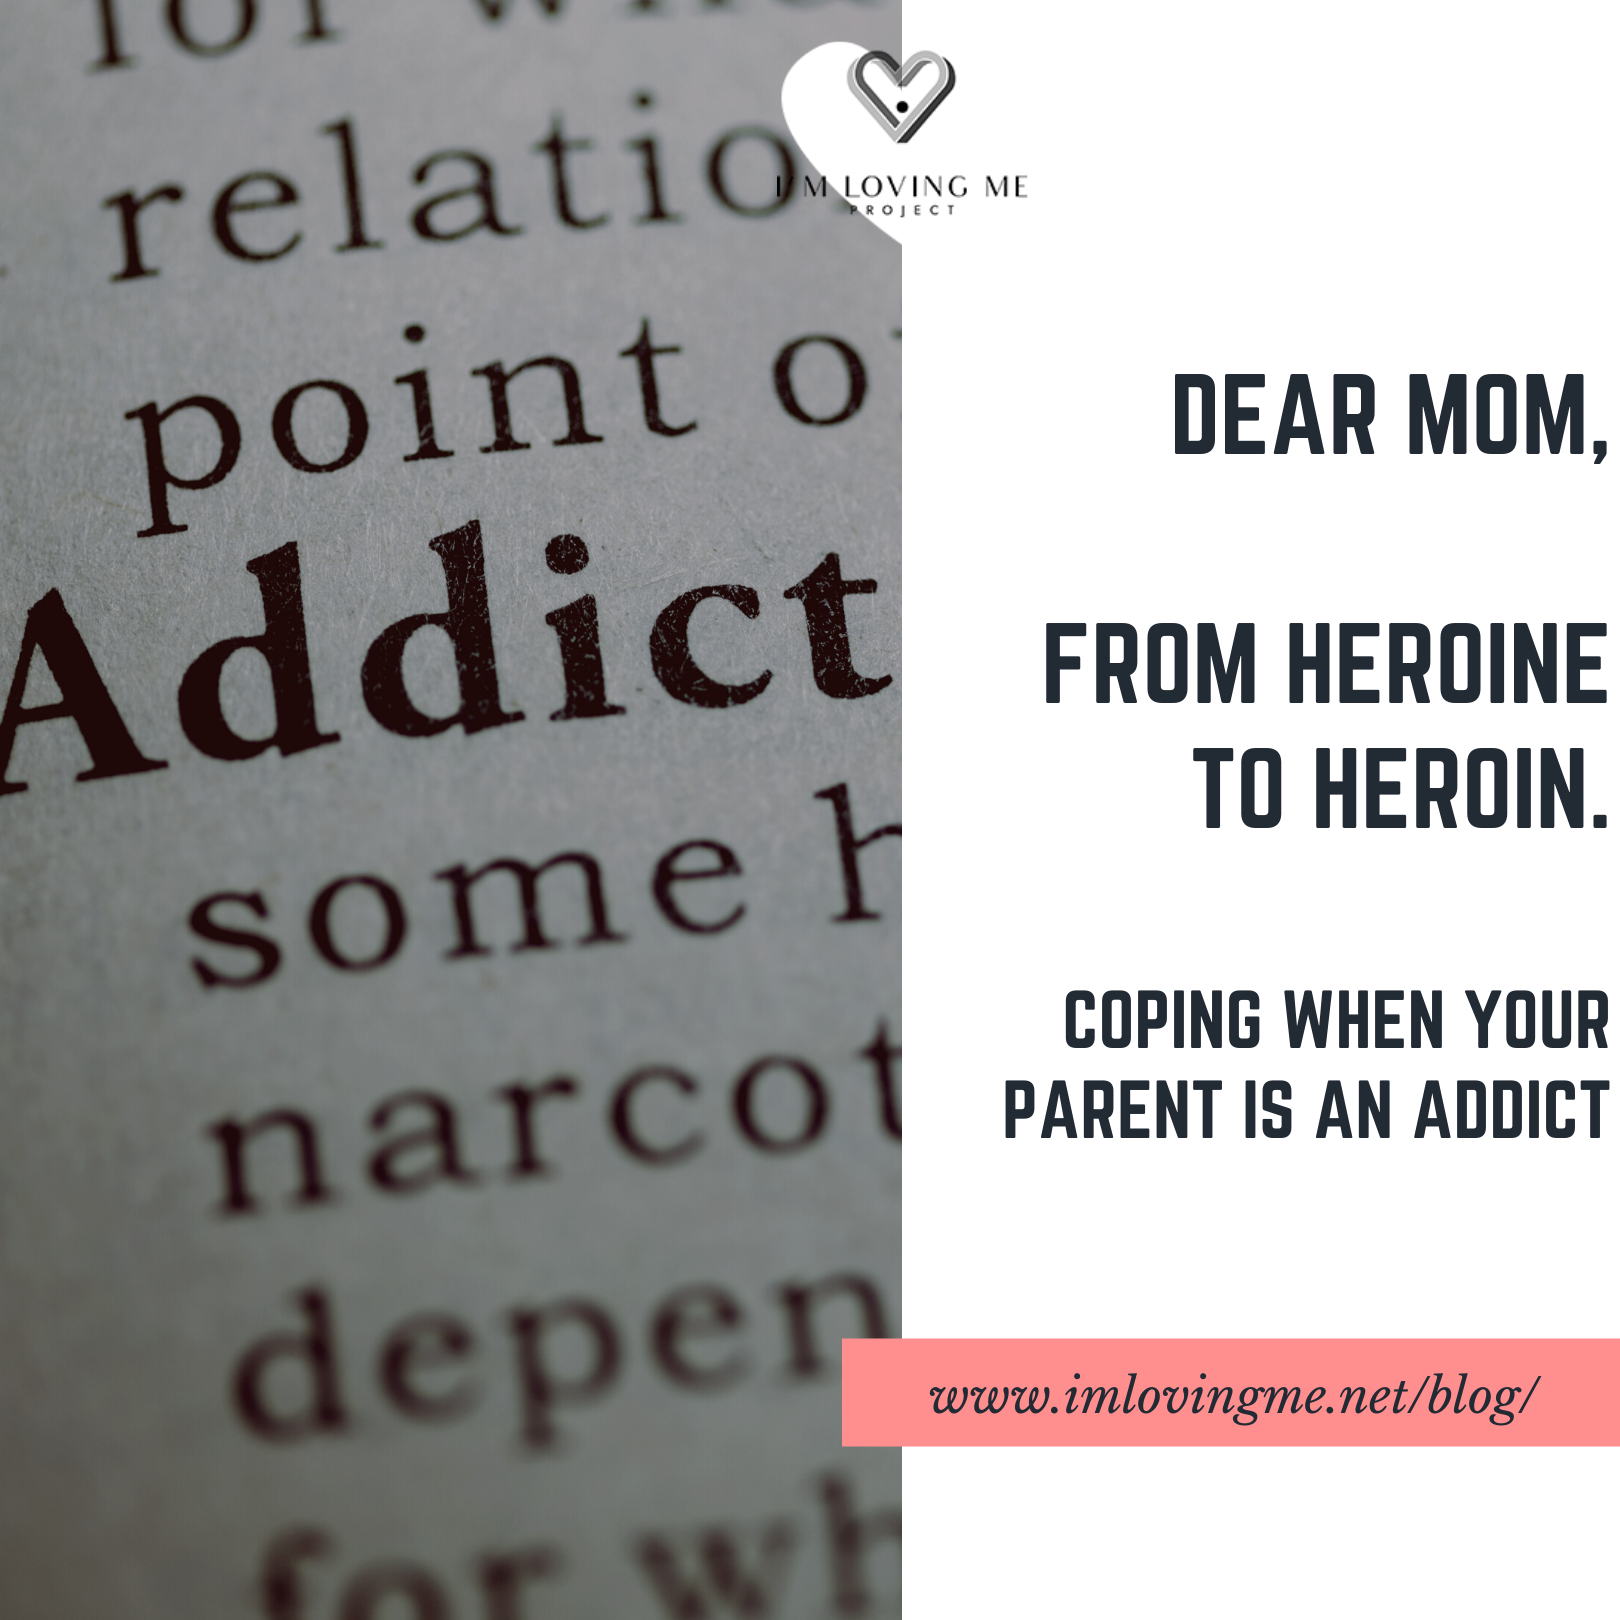 Dear Mom, From Heroine to Heroin?